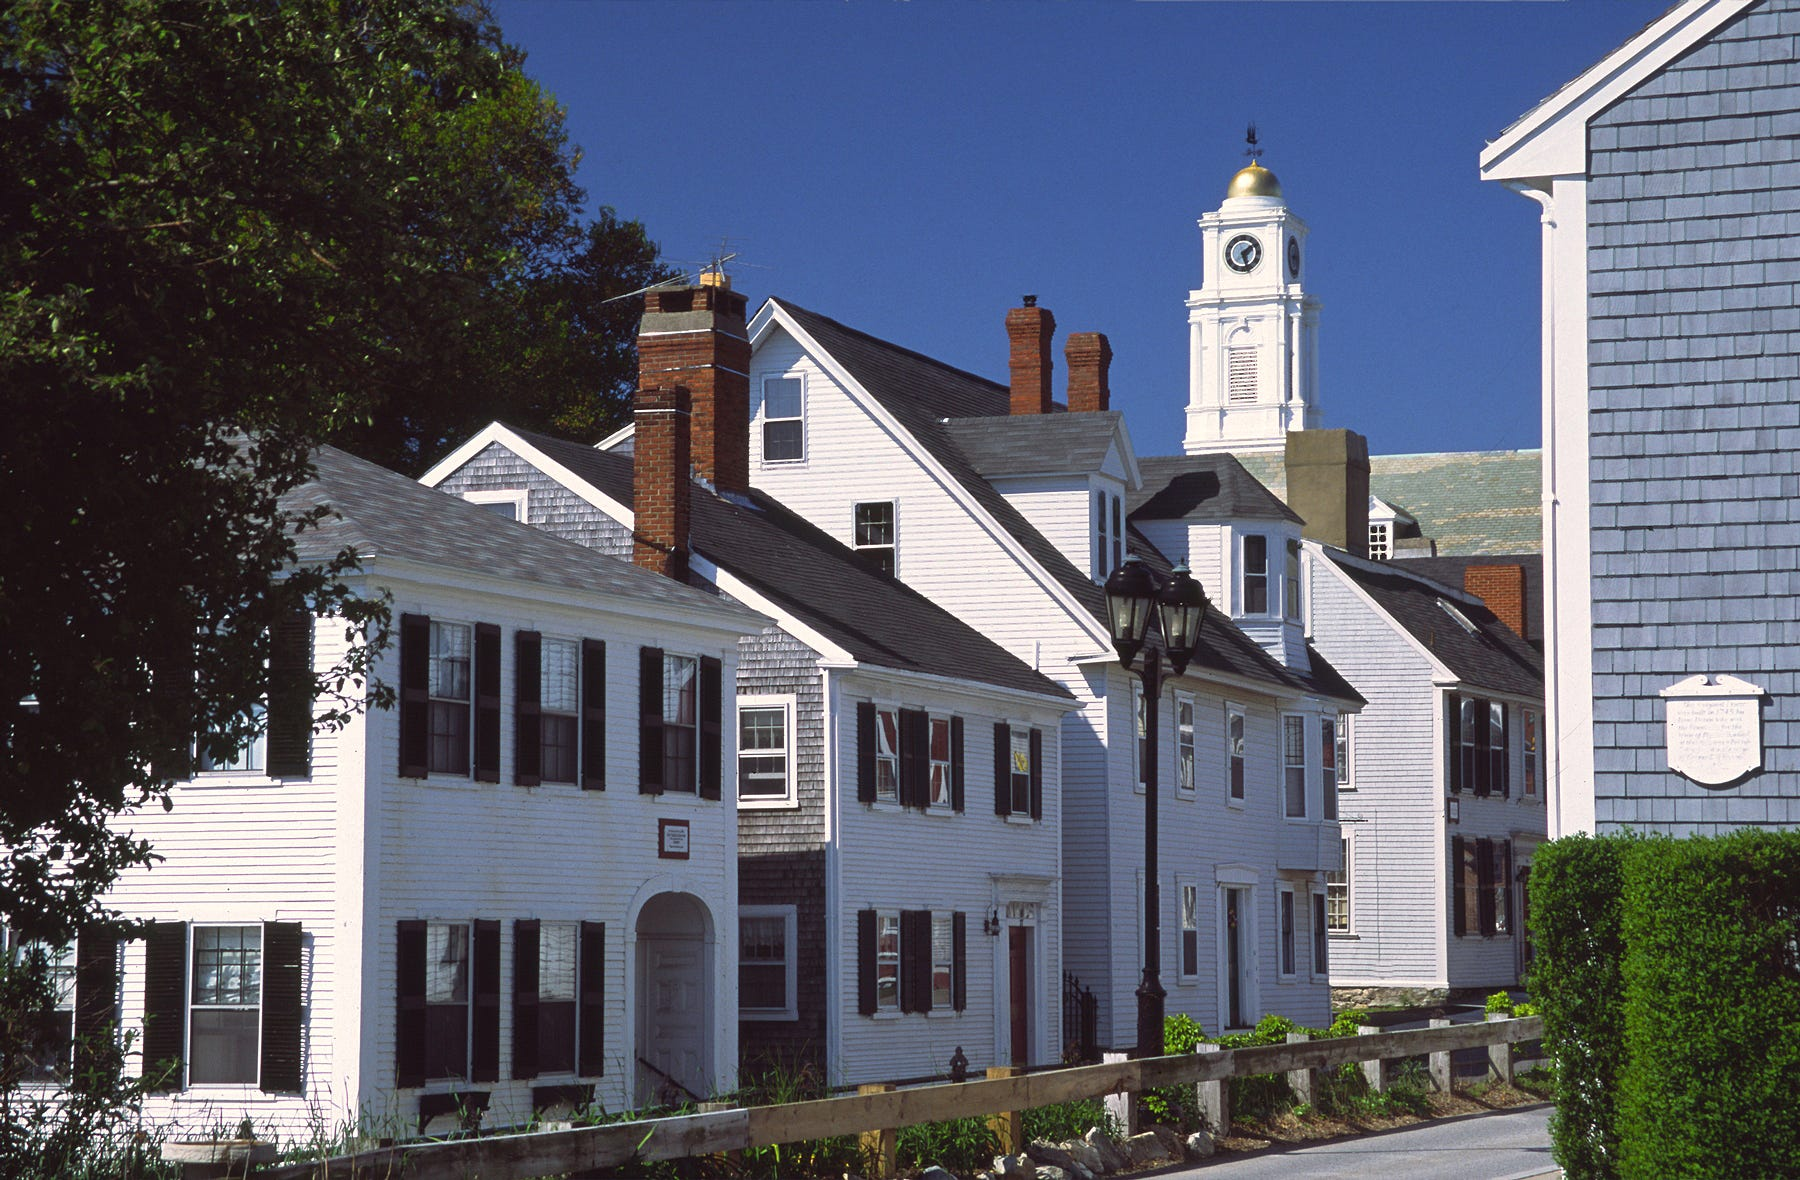 Best places to live in new england for young adults